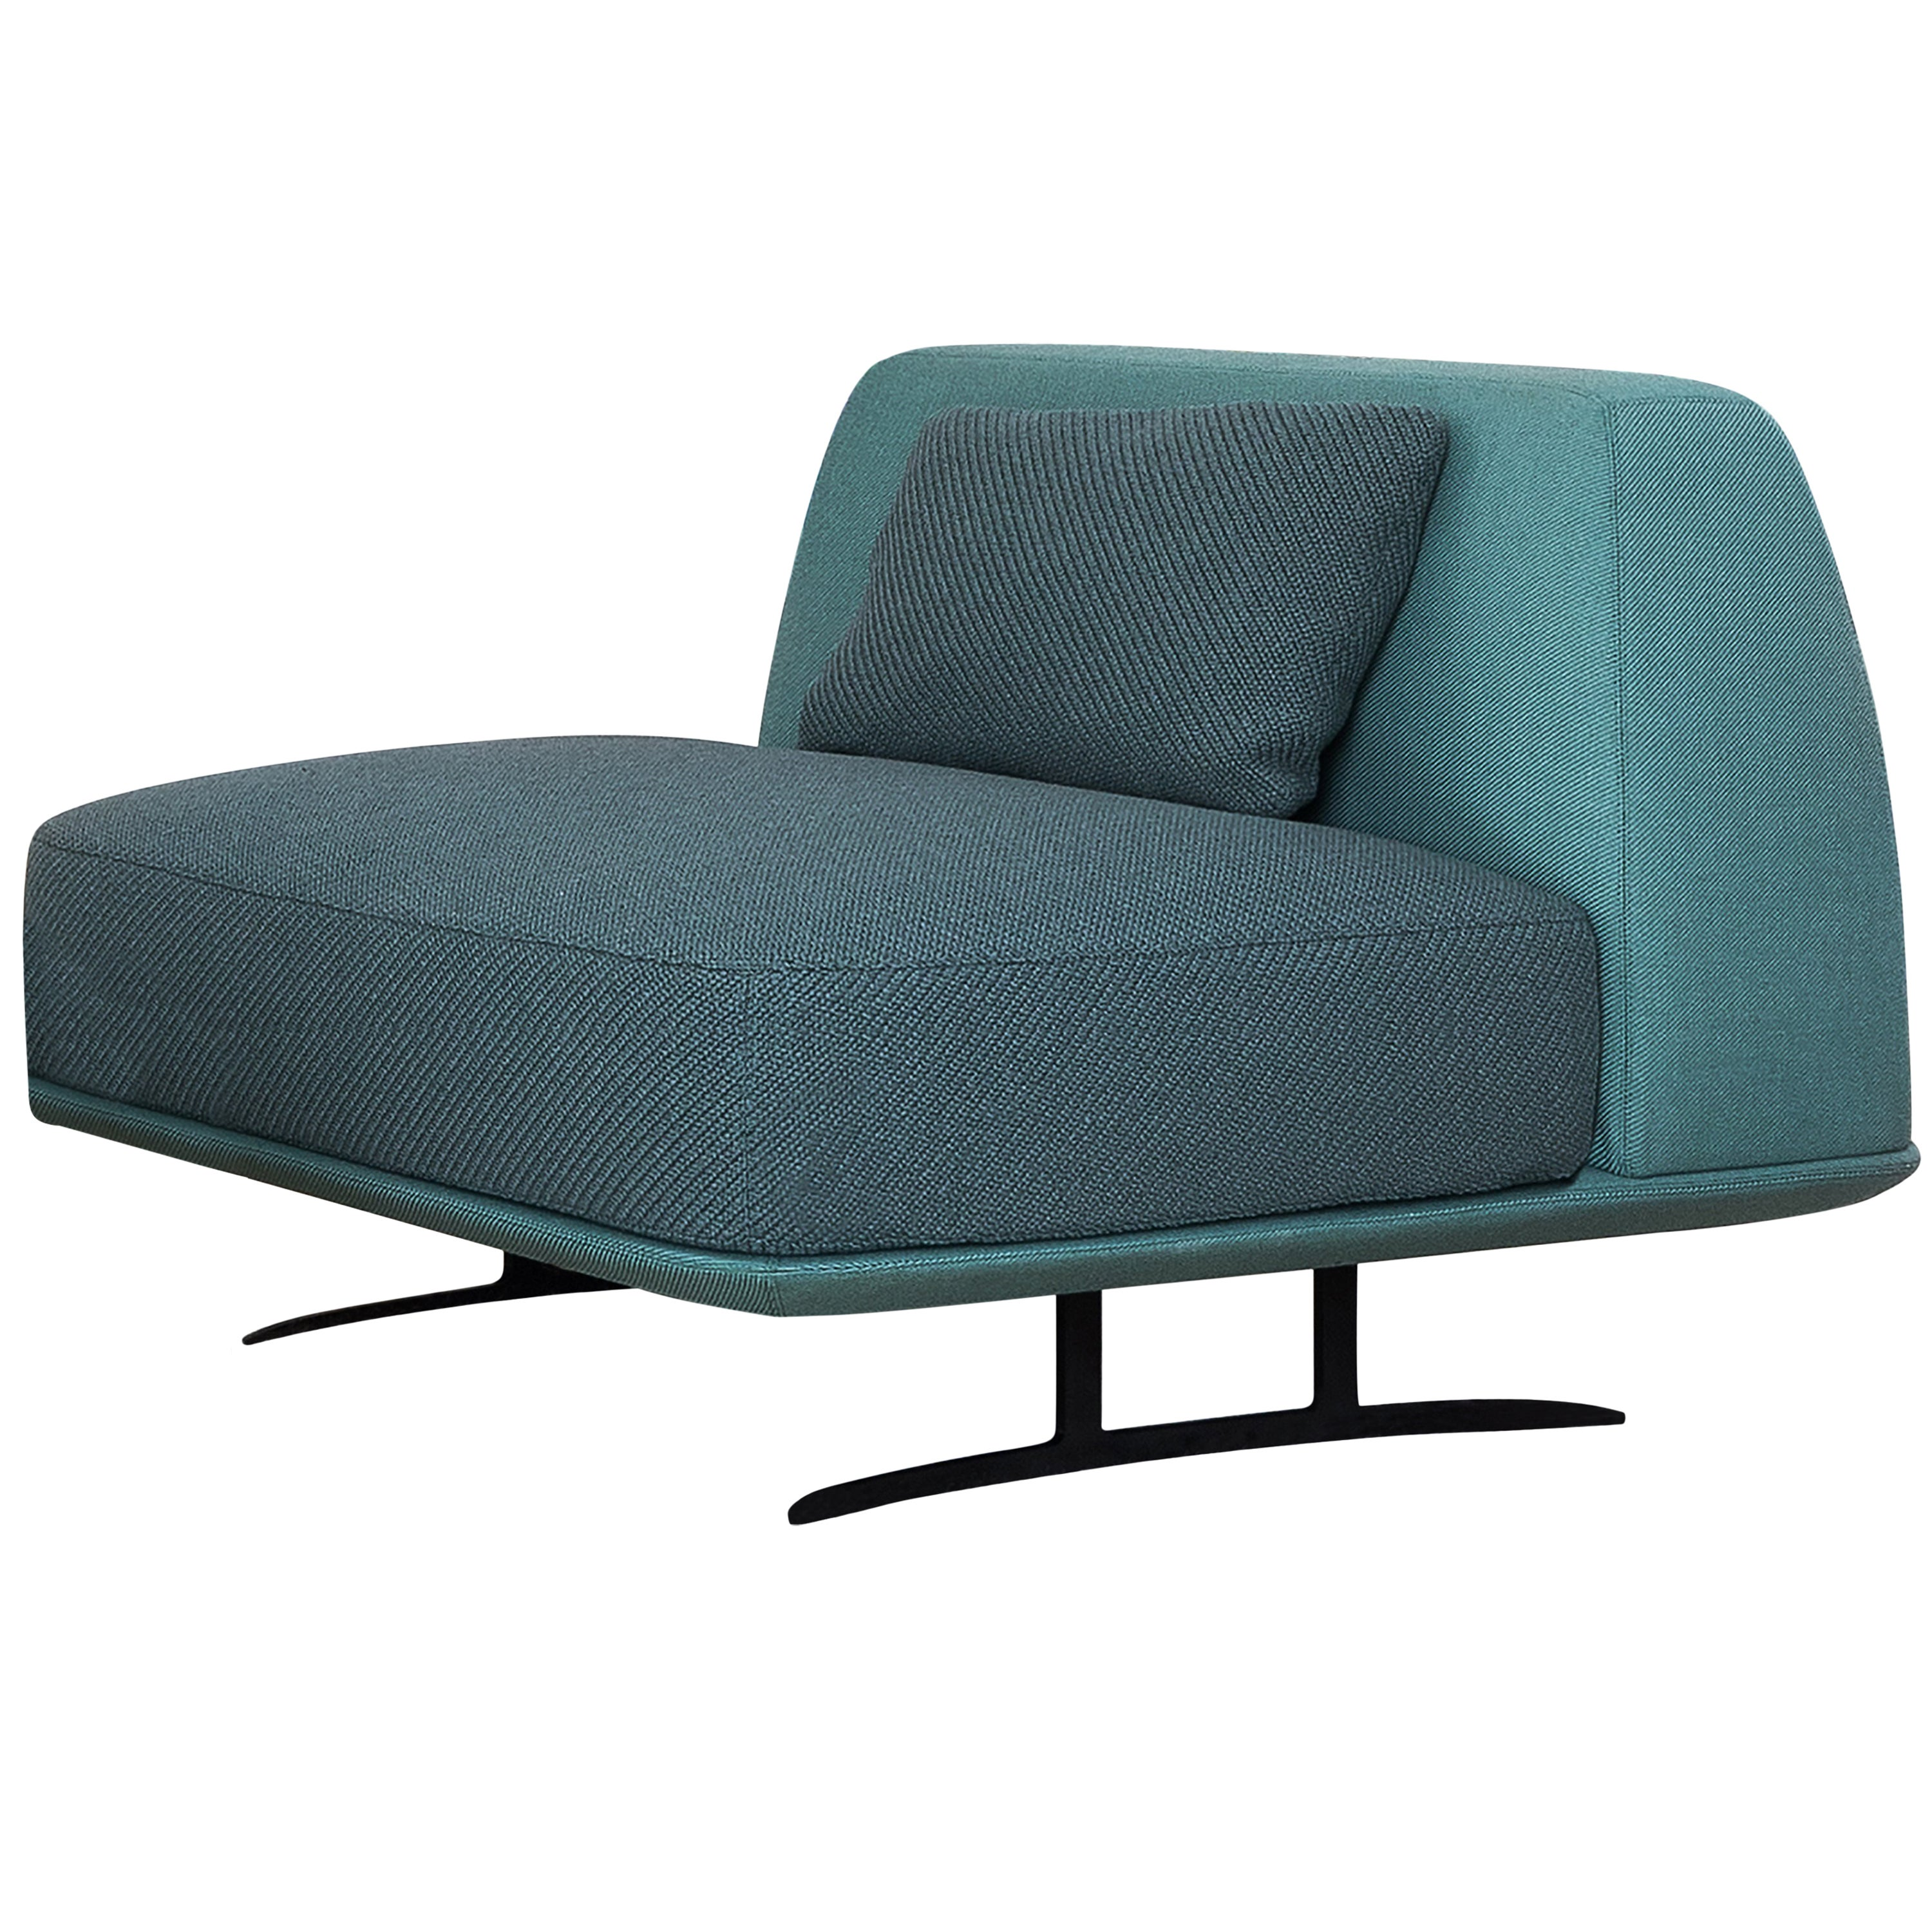 Baleri Italia Trays Armchair In Blue Fabric By Parisotto Formenton